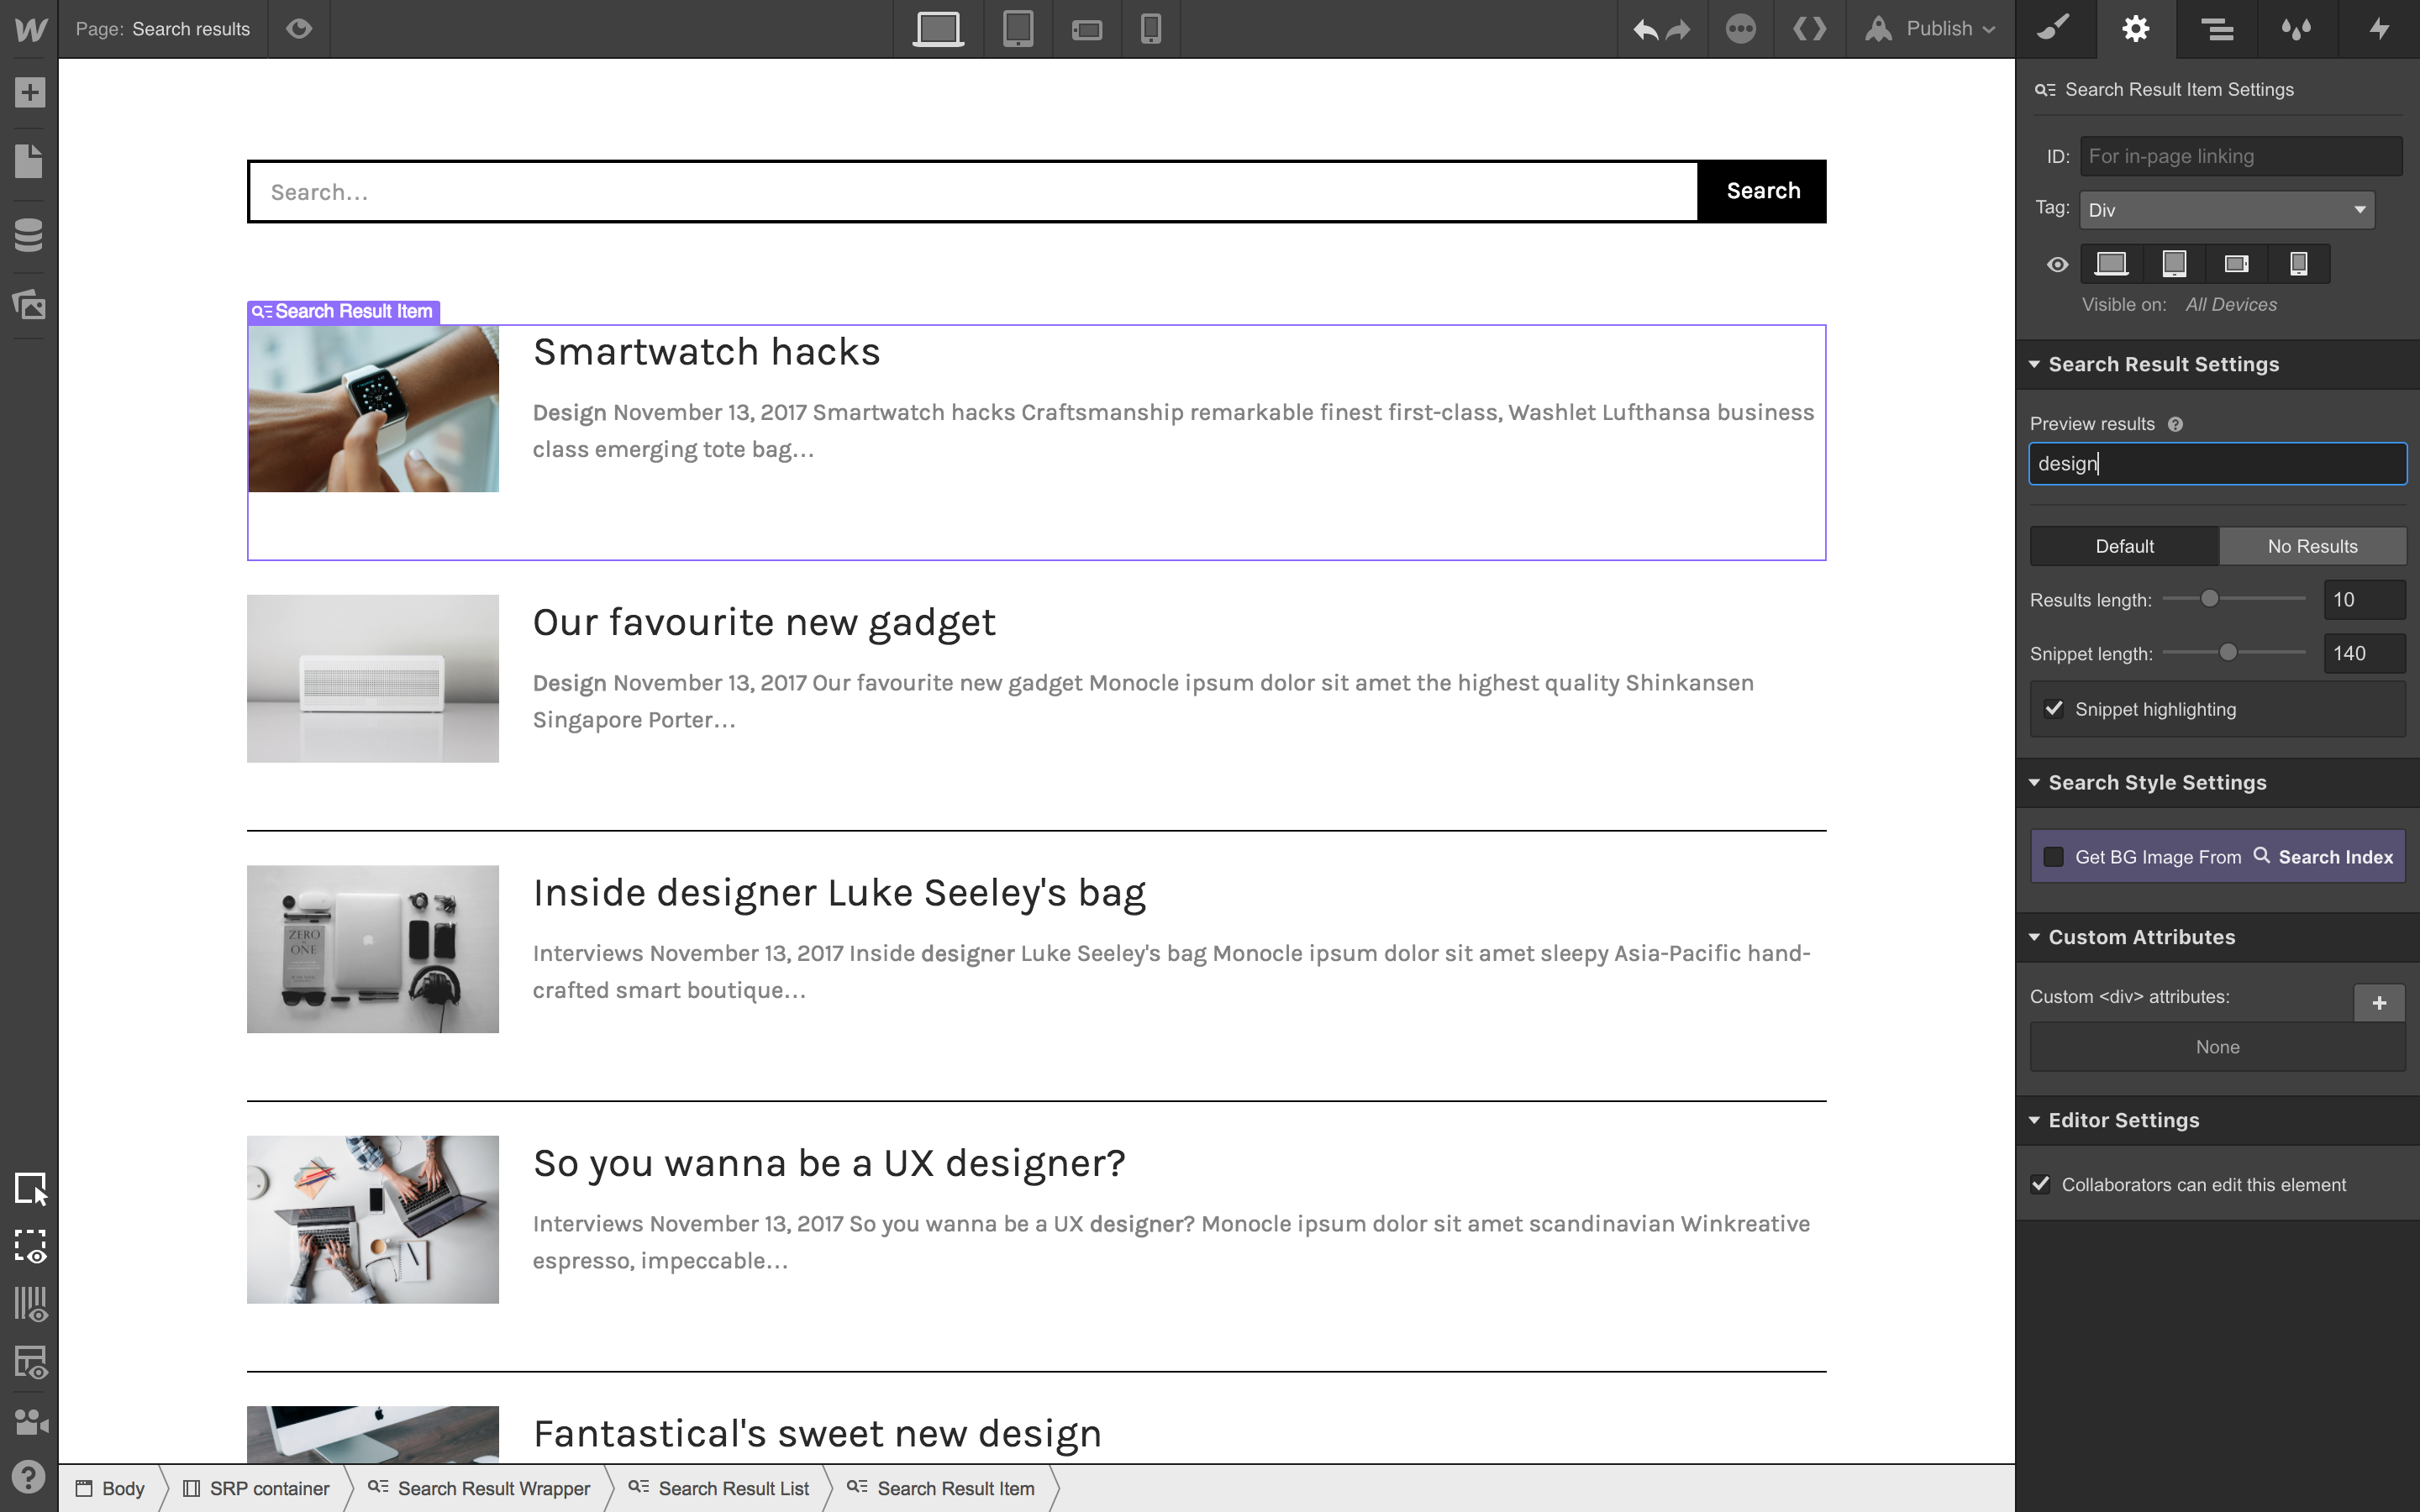 Preview results before going live to see how results look for different queries.